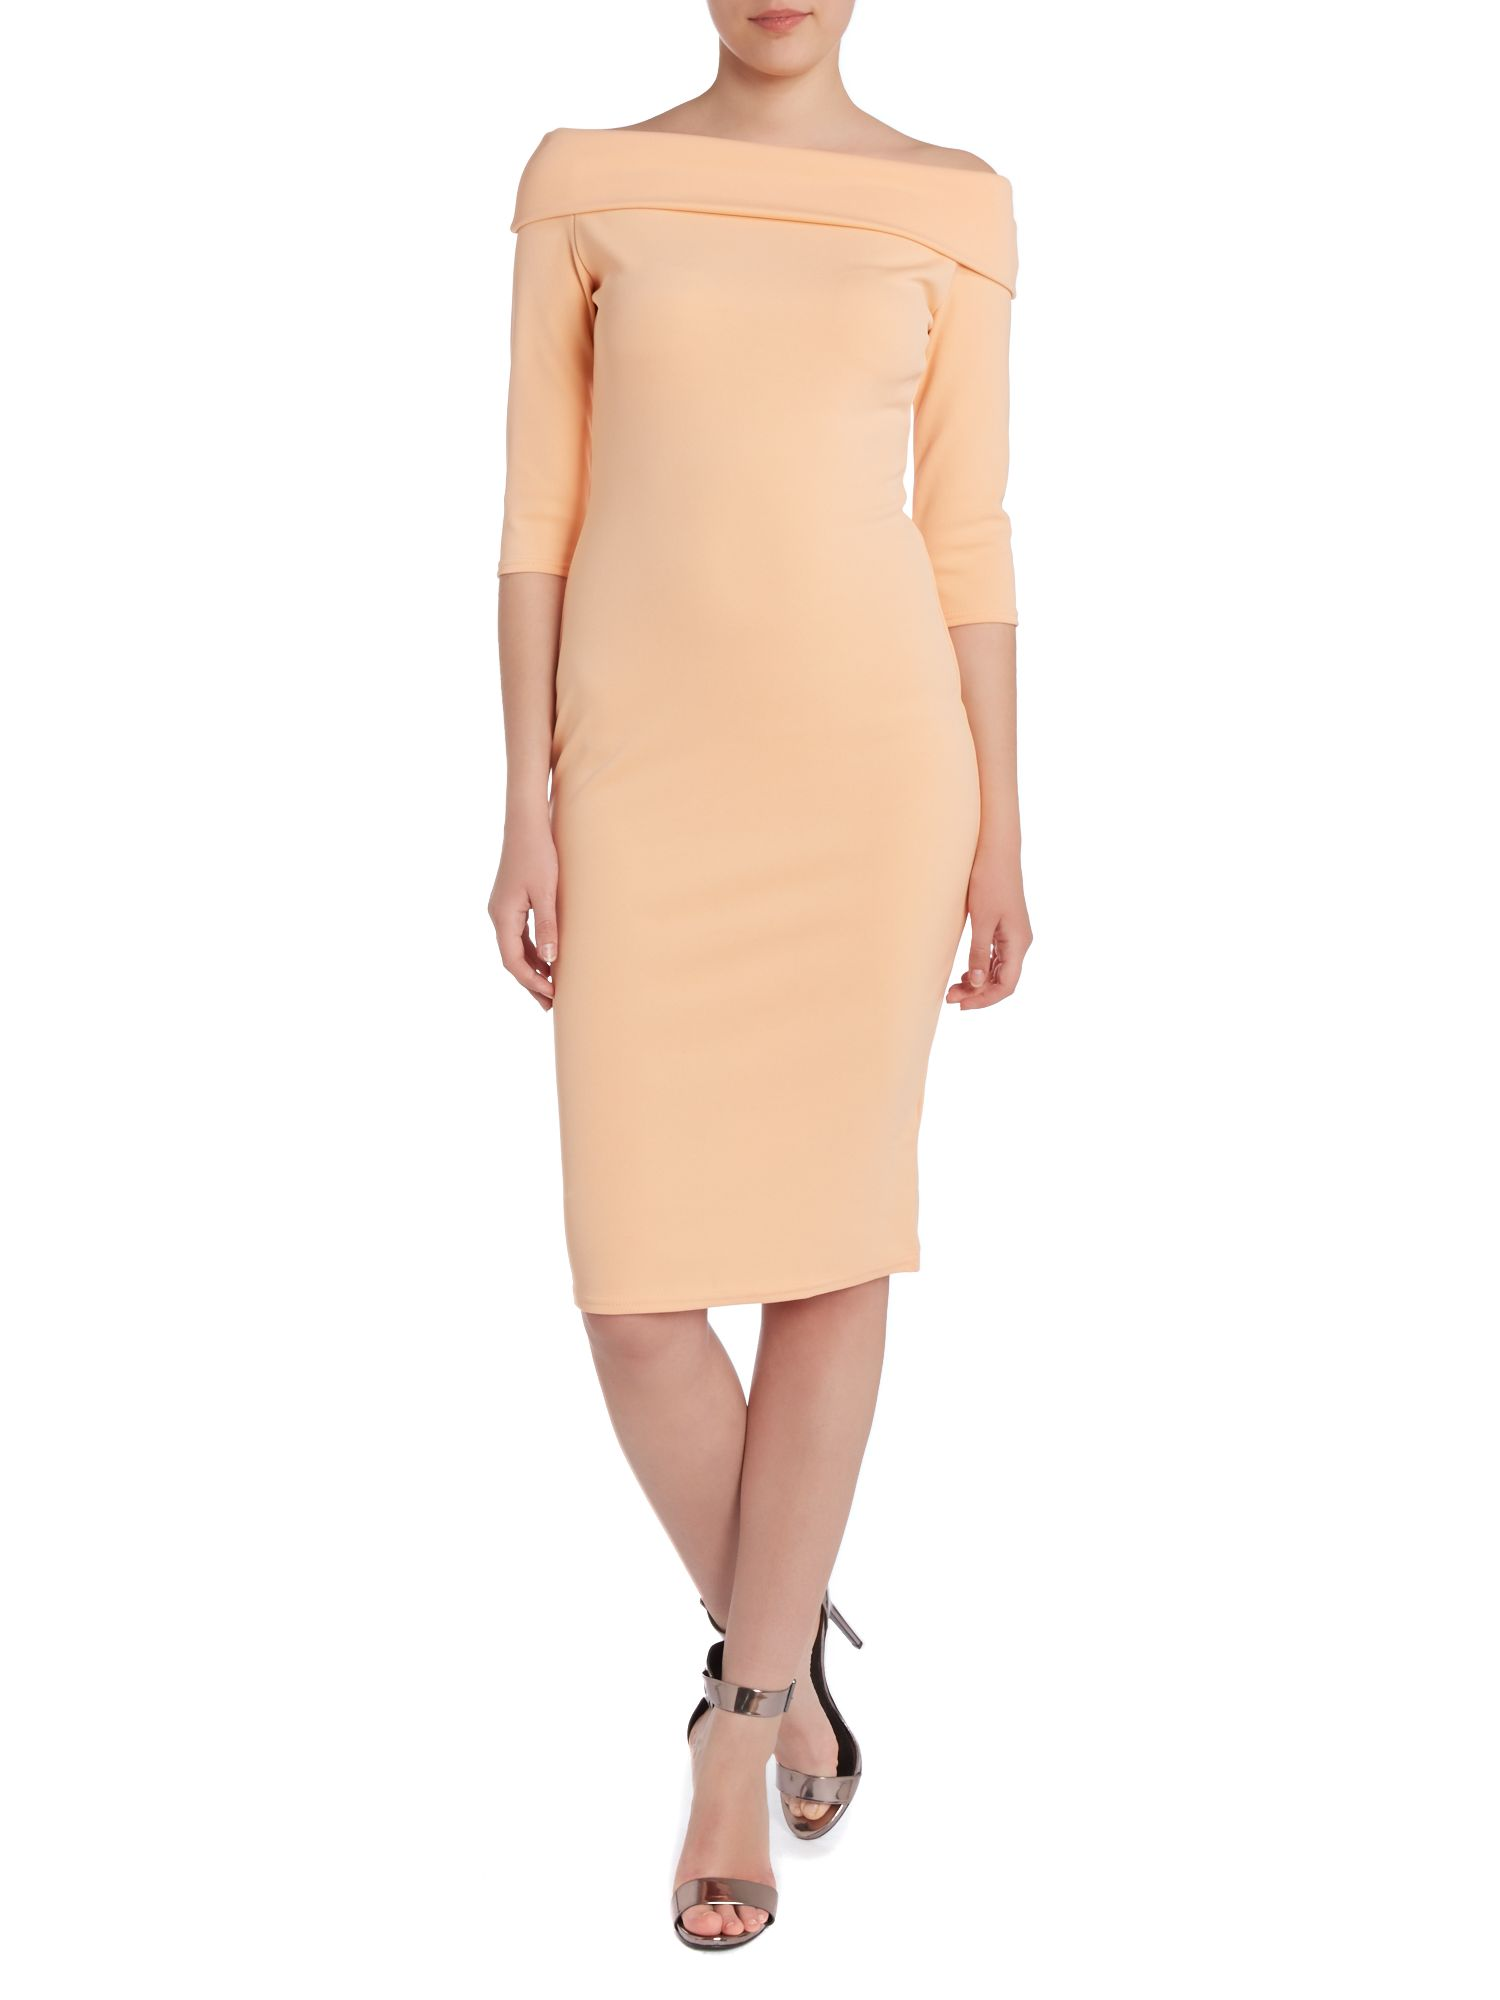 3/4 length sleeve bardot dress